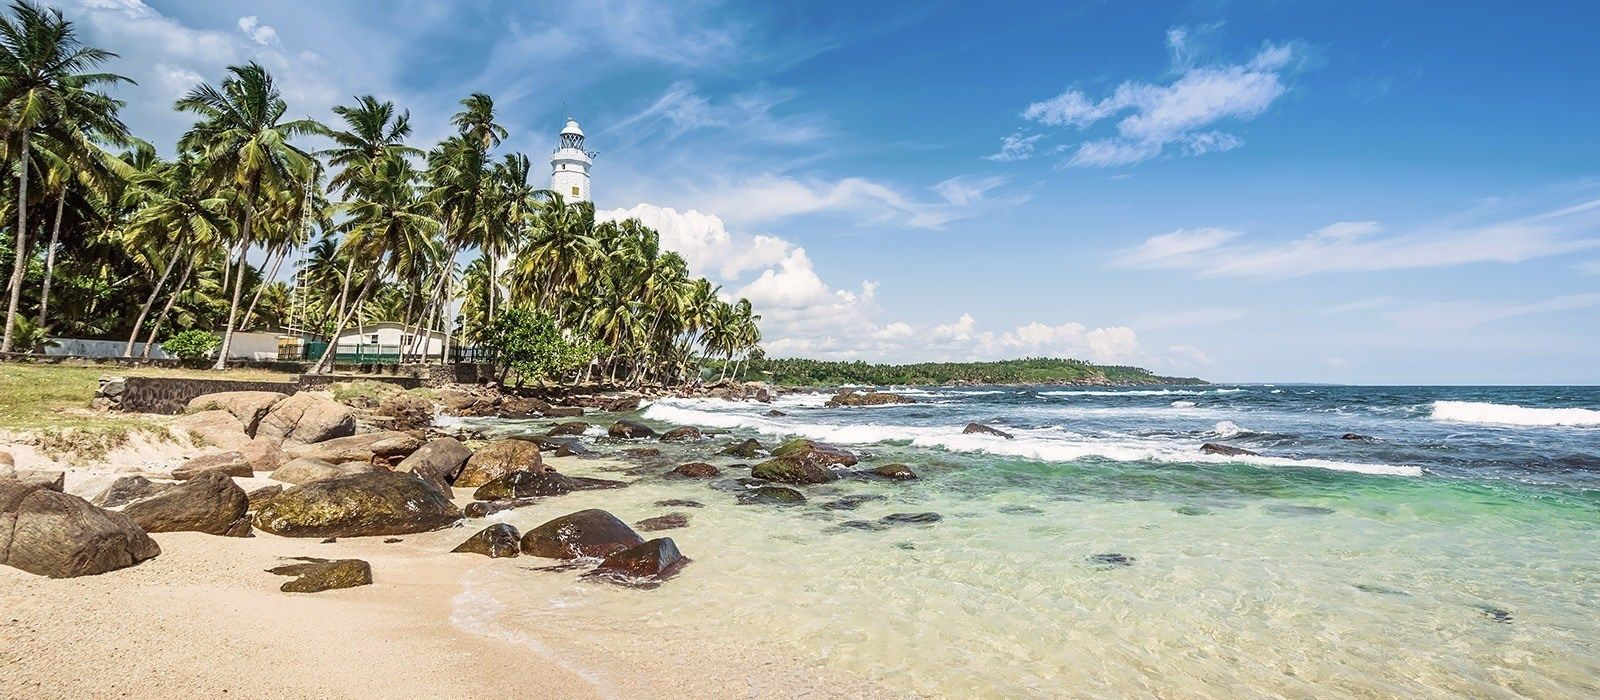 Sri Lankan Heritage and Maldives Luxury Tour Trip 5